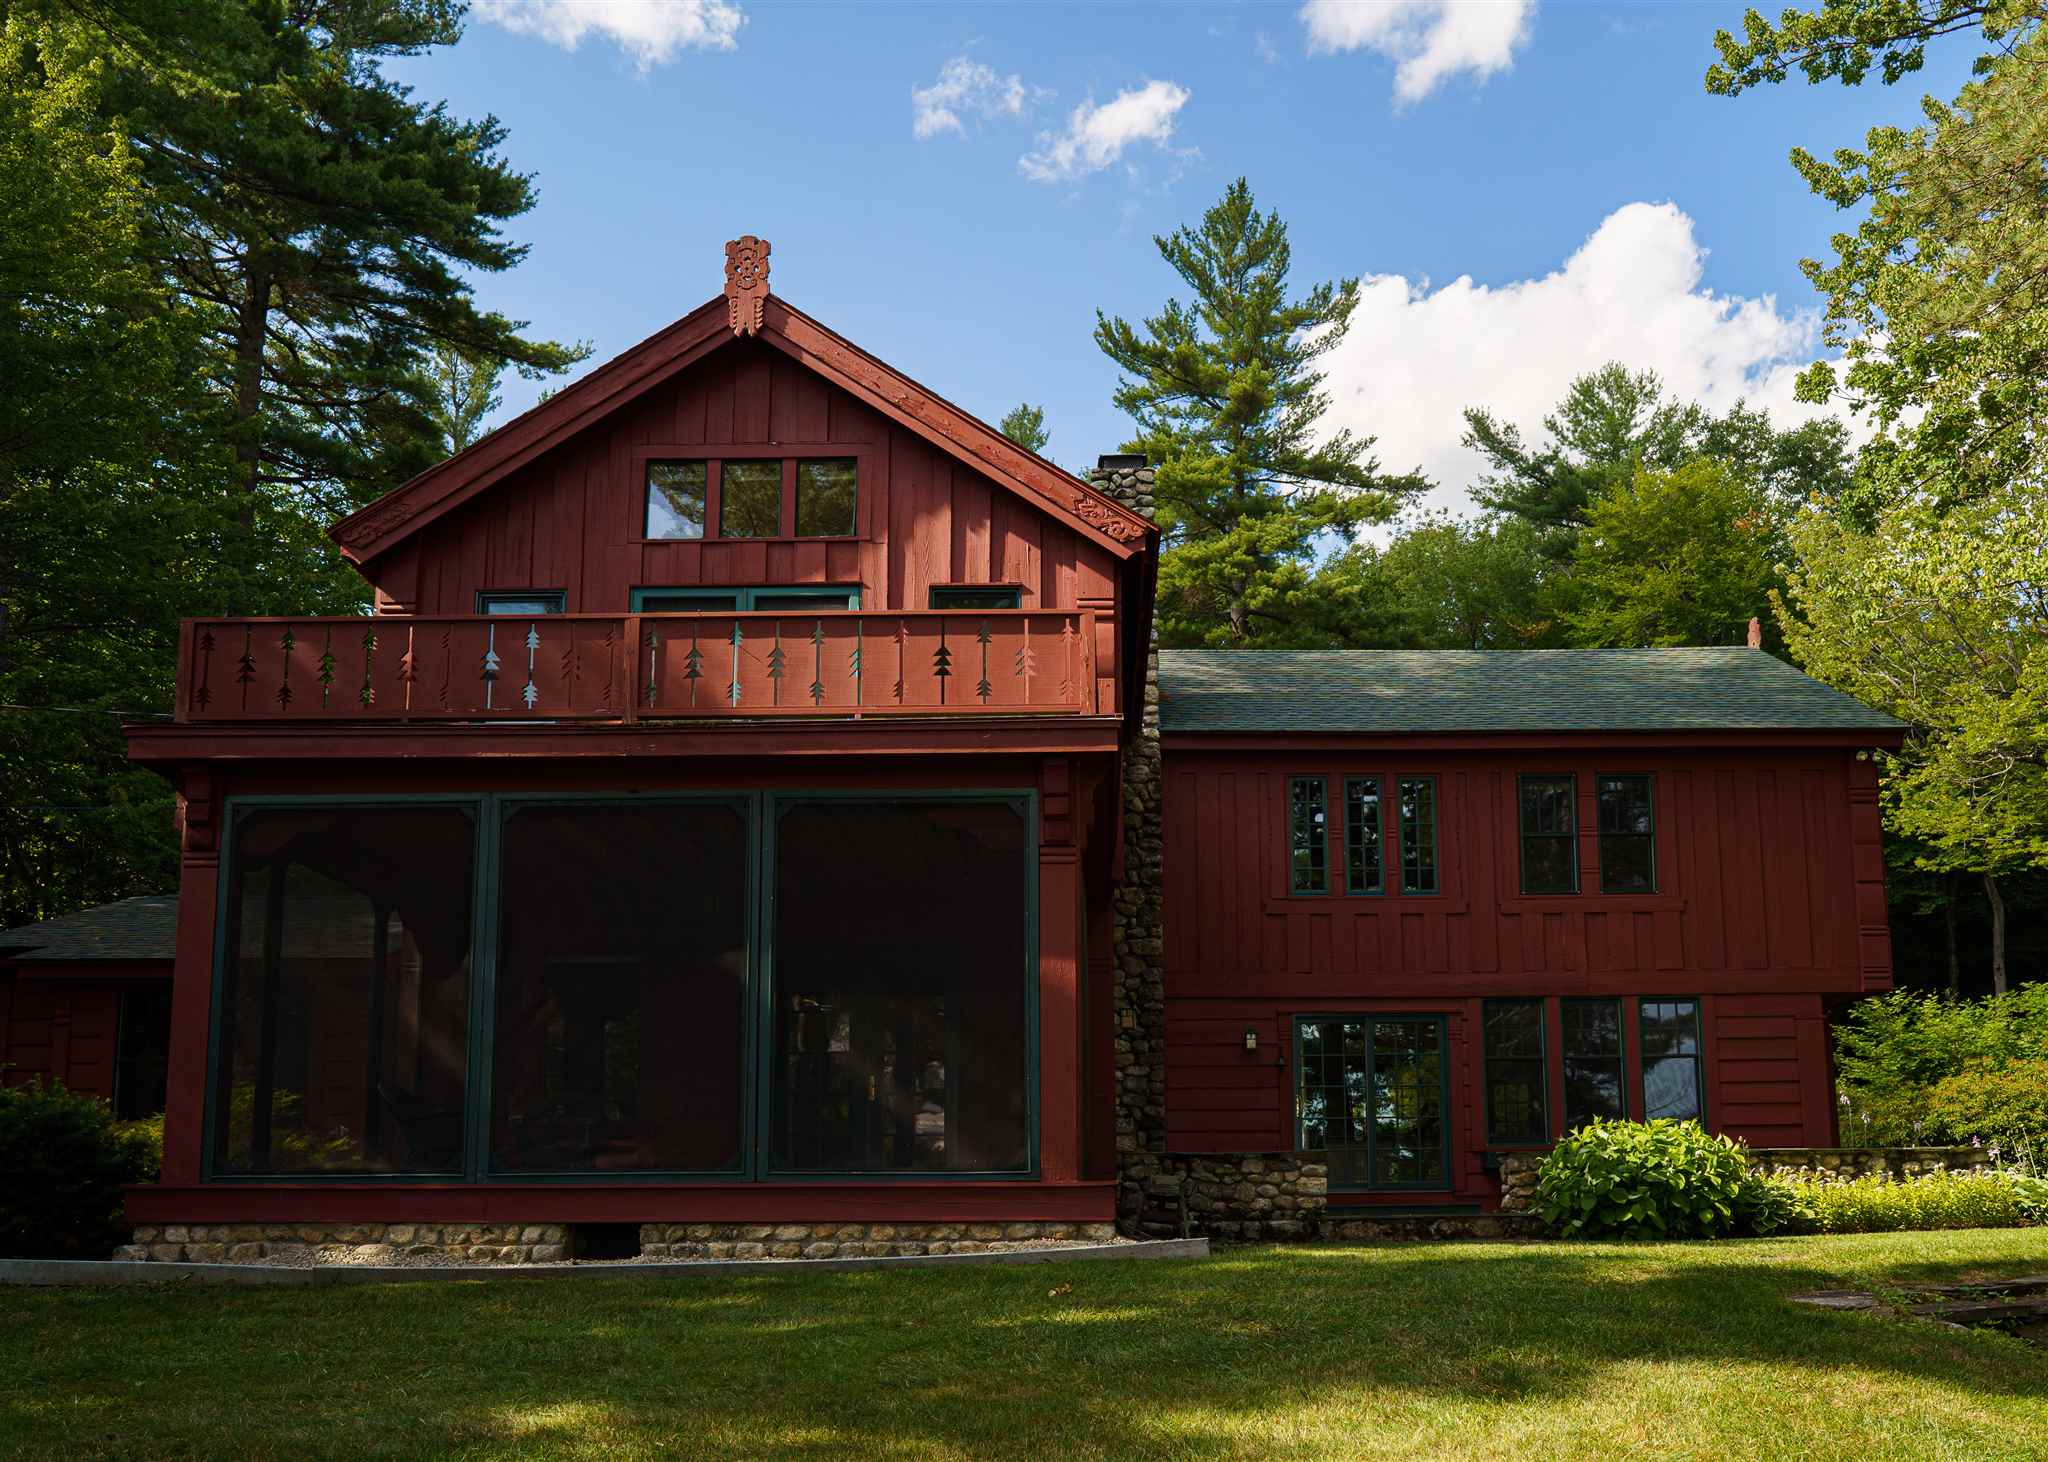 46 Twin Lake Villa Road New London Nh New Hampshire 03257 New London Real Estate New London Home For Sale